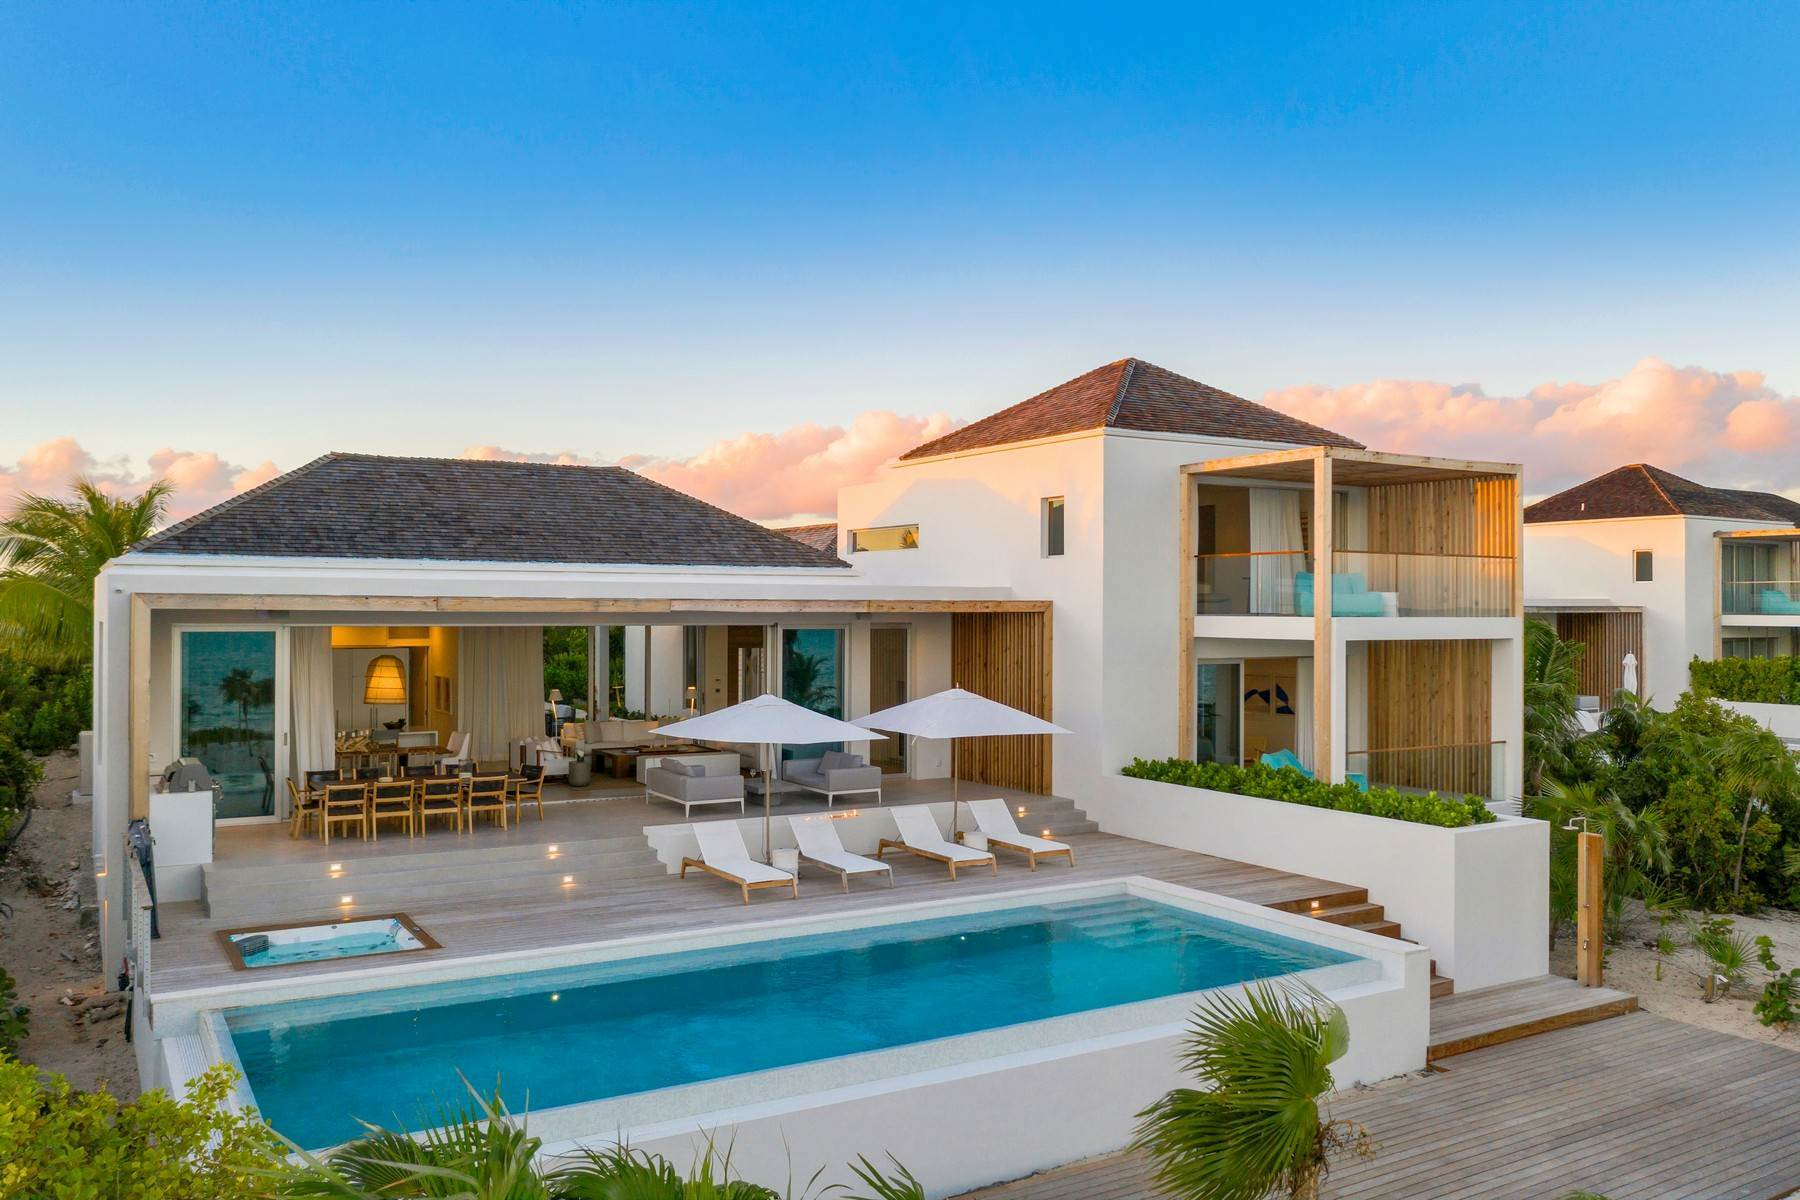 Single Family Homes for Sale at Beach Enclave Long Bay - Villa 3 Beach Enclave Long Bay, Long Bay, Providenciales Turks And Caicos Islands